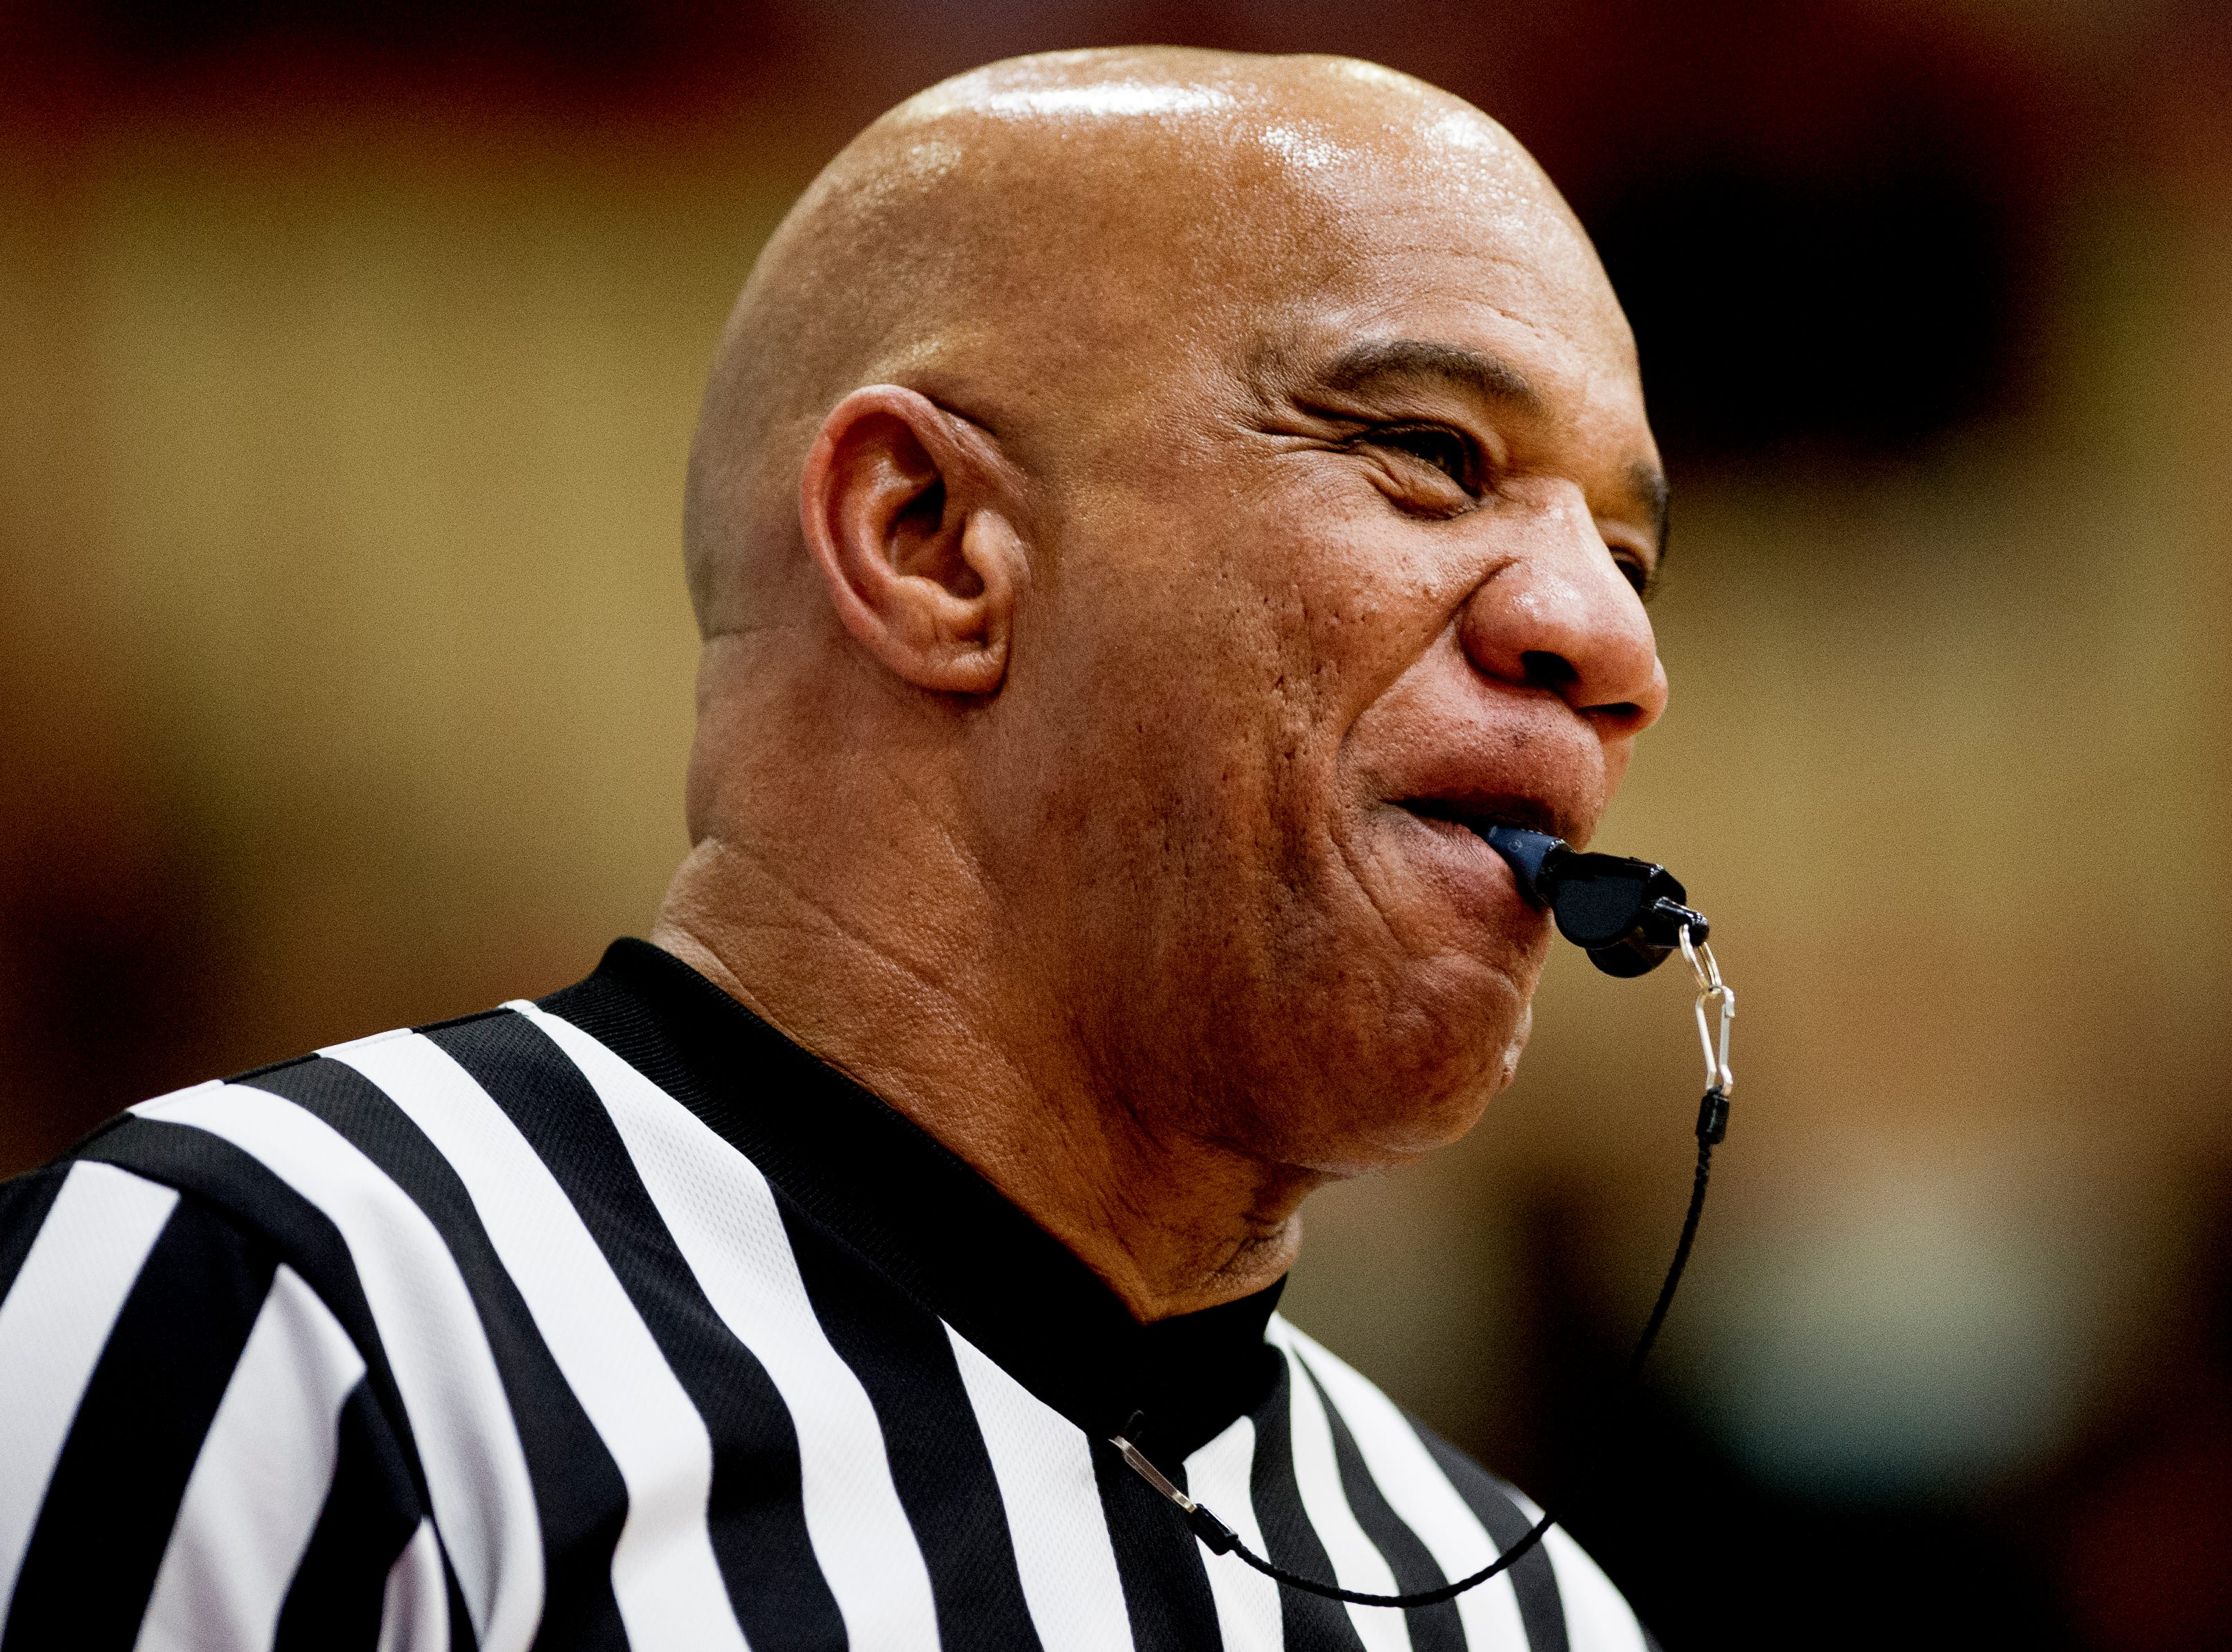 A referee laughs during game action between Austin-East and Fulton at Austin-East High School in Knoxville, Tennessee on Saturday, January 5, 2019.